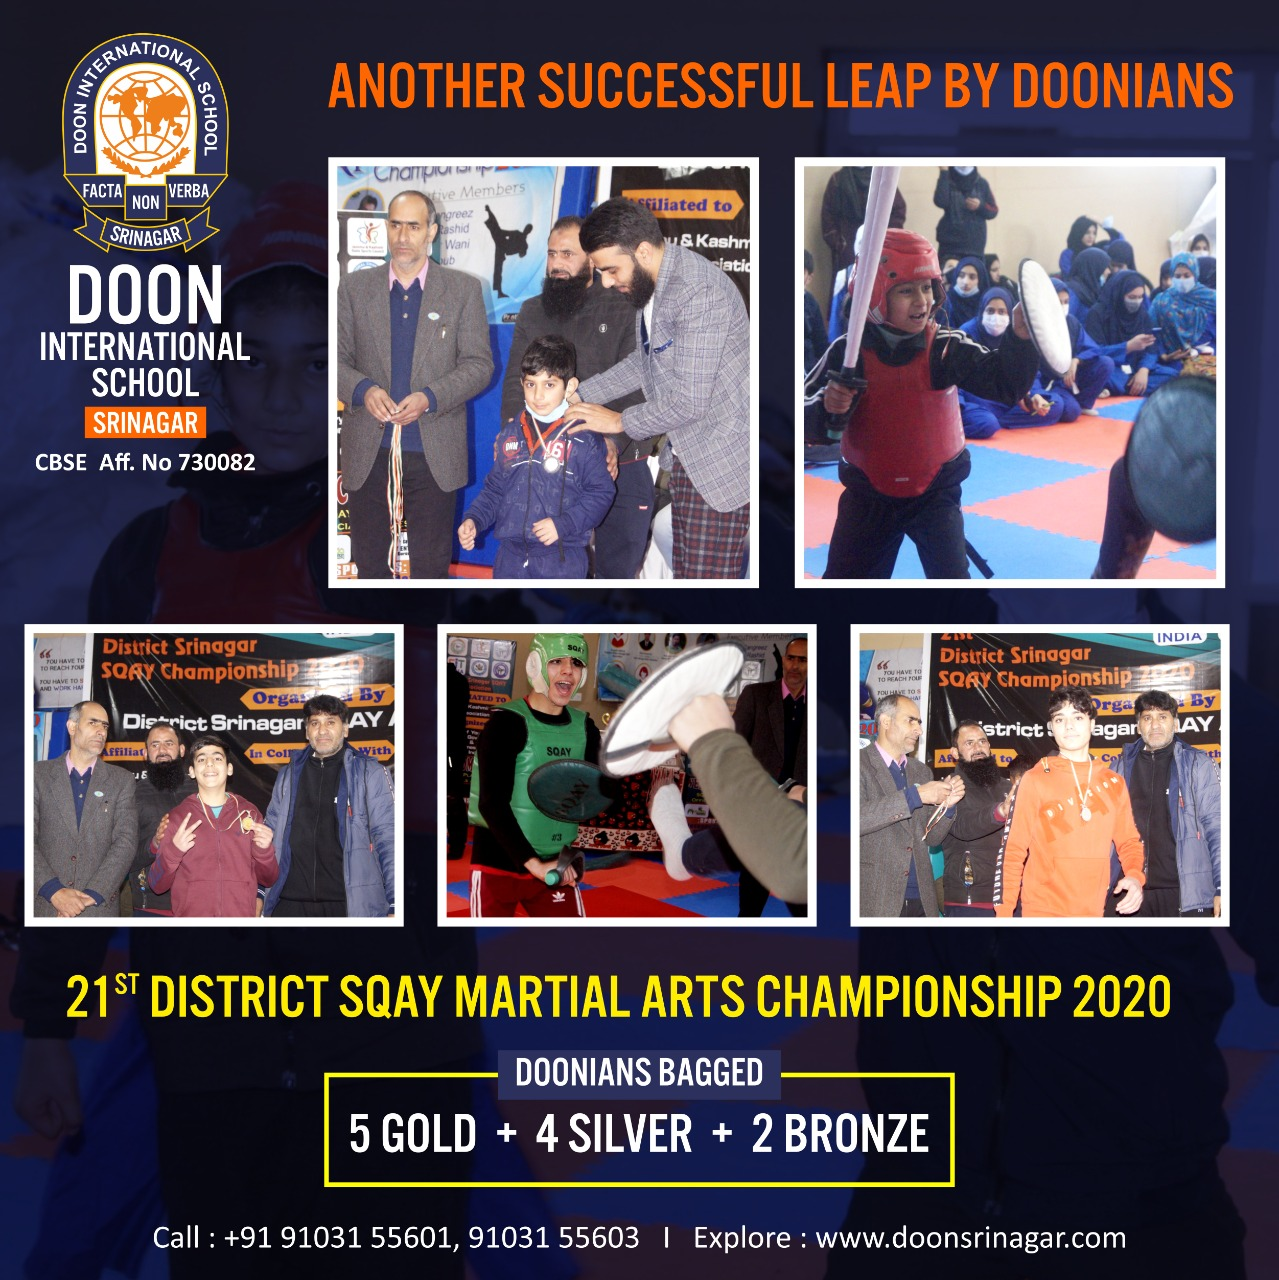 21st District SQAY Championship 2020